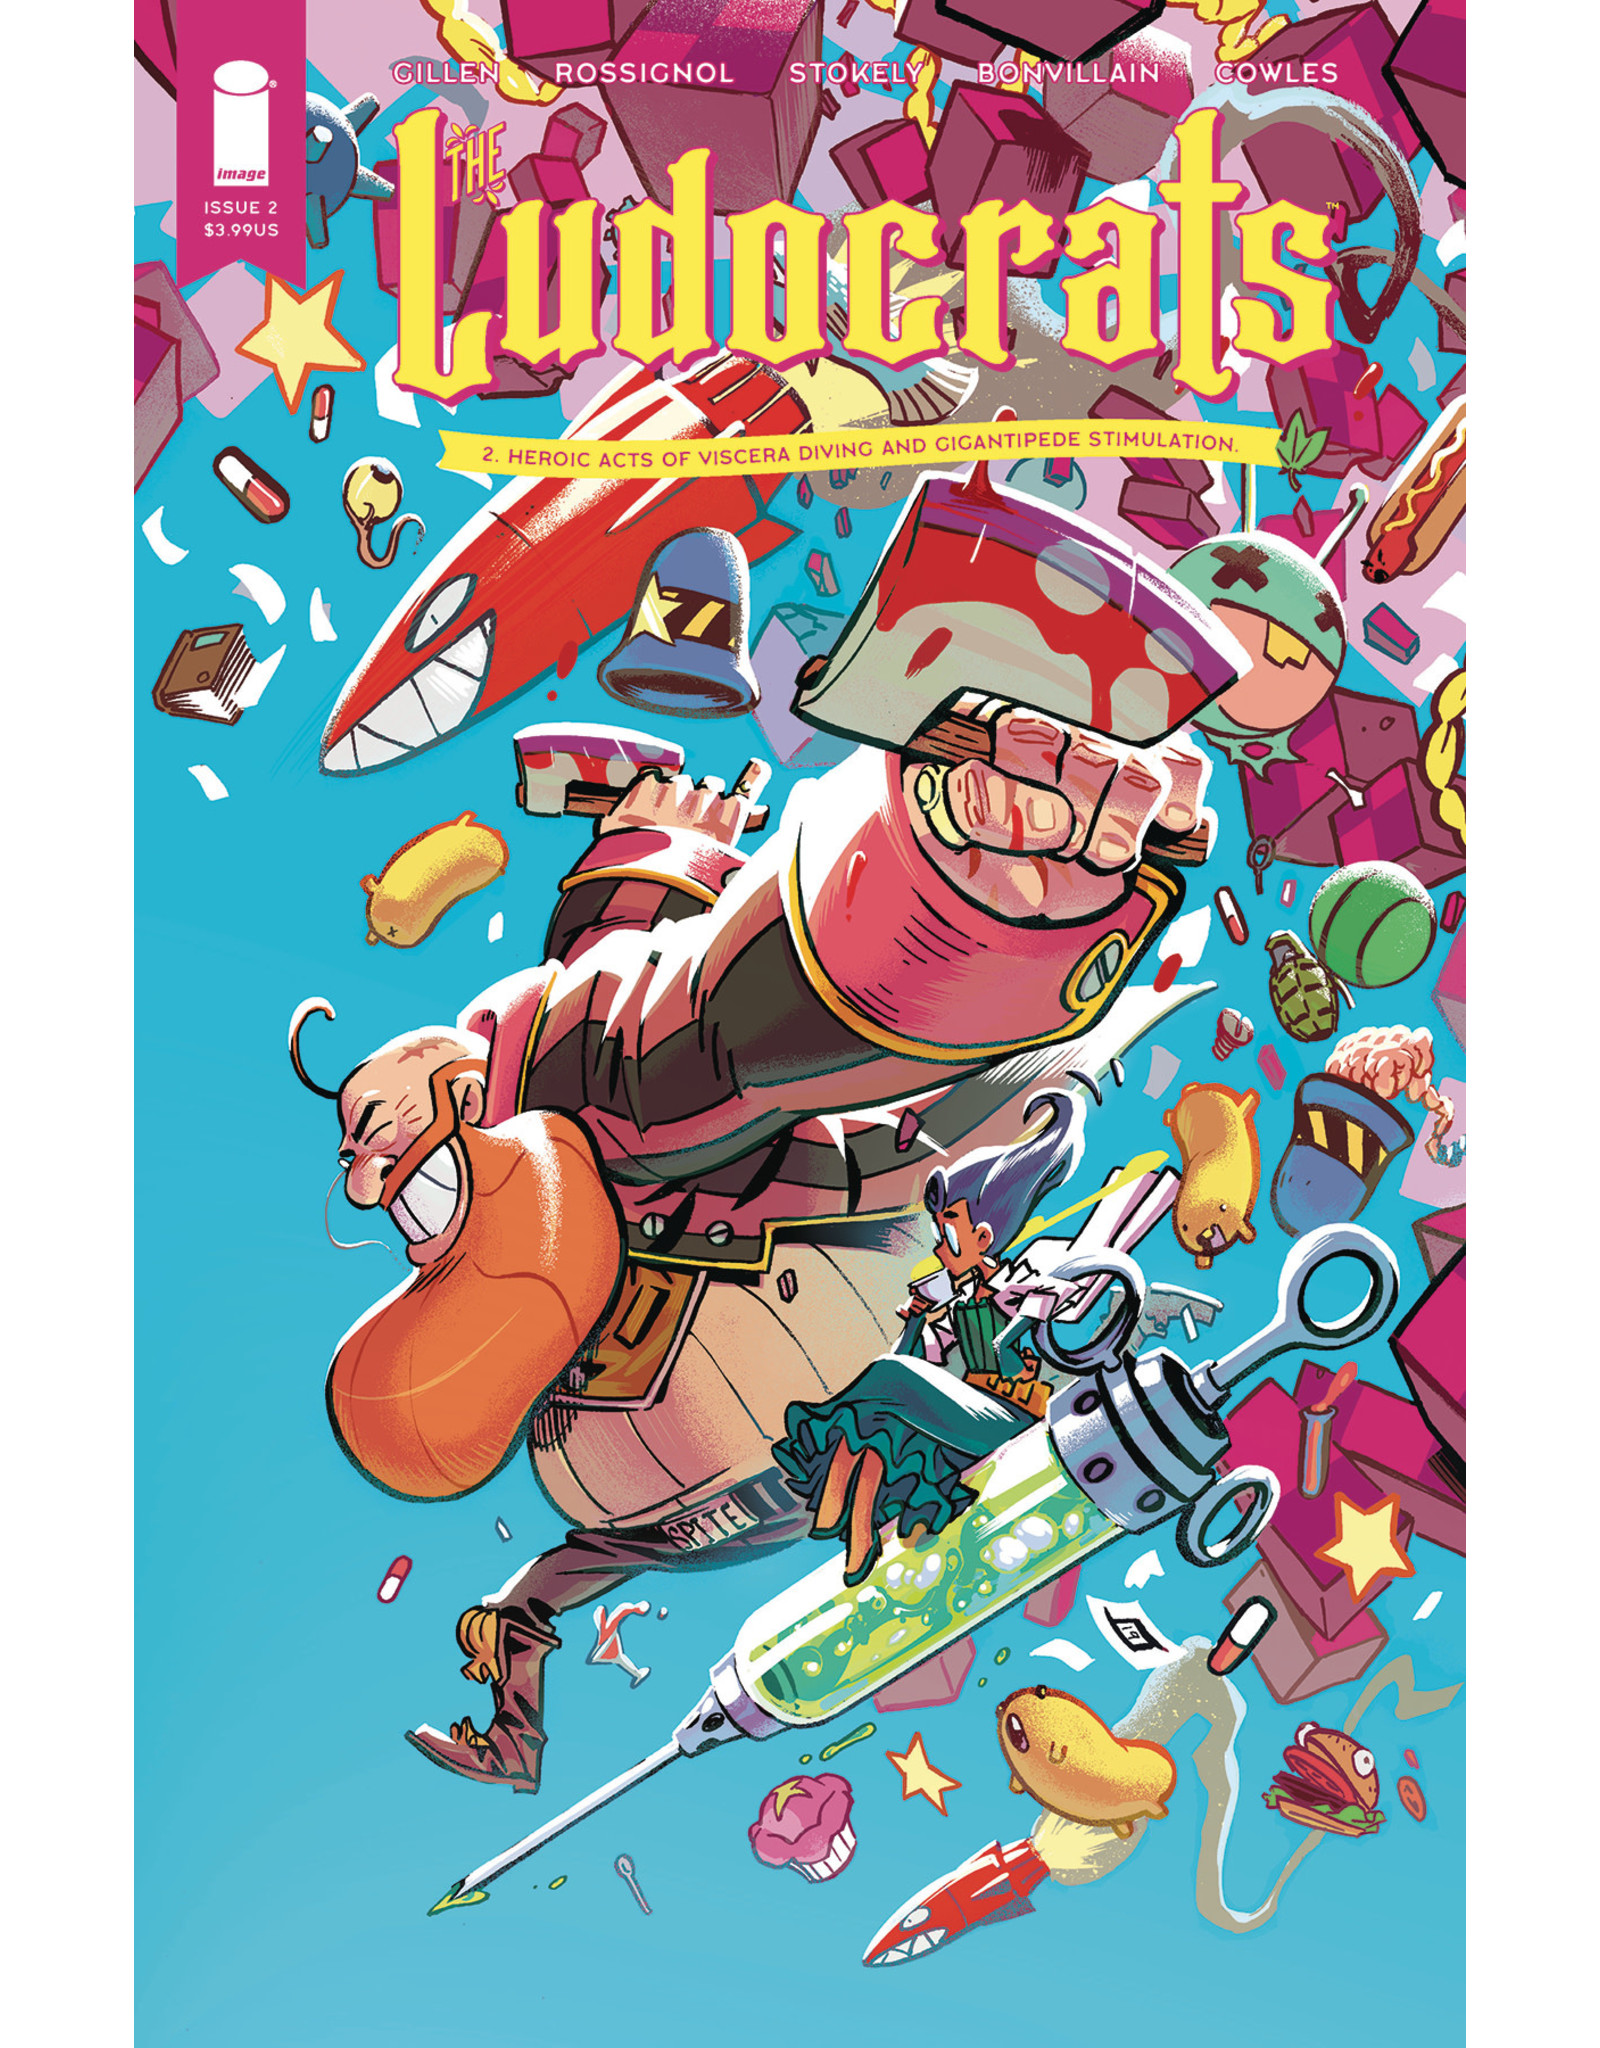 IMAGE COMICS LUDOCRATS #2 (OF 5) CVR A STOKELY